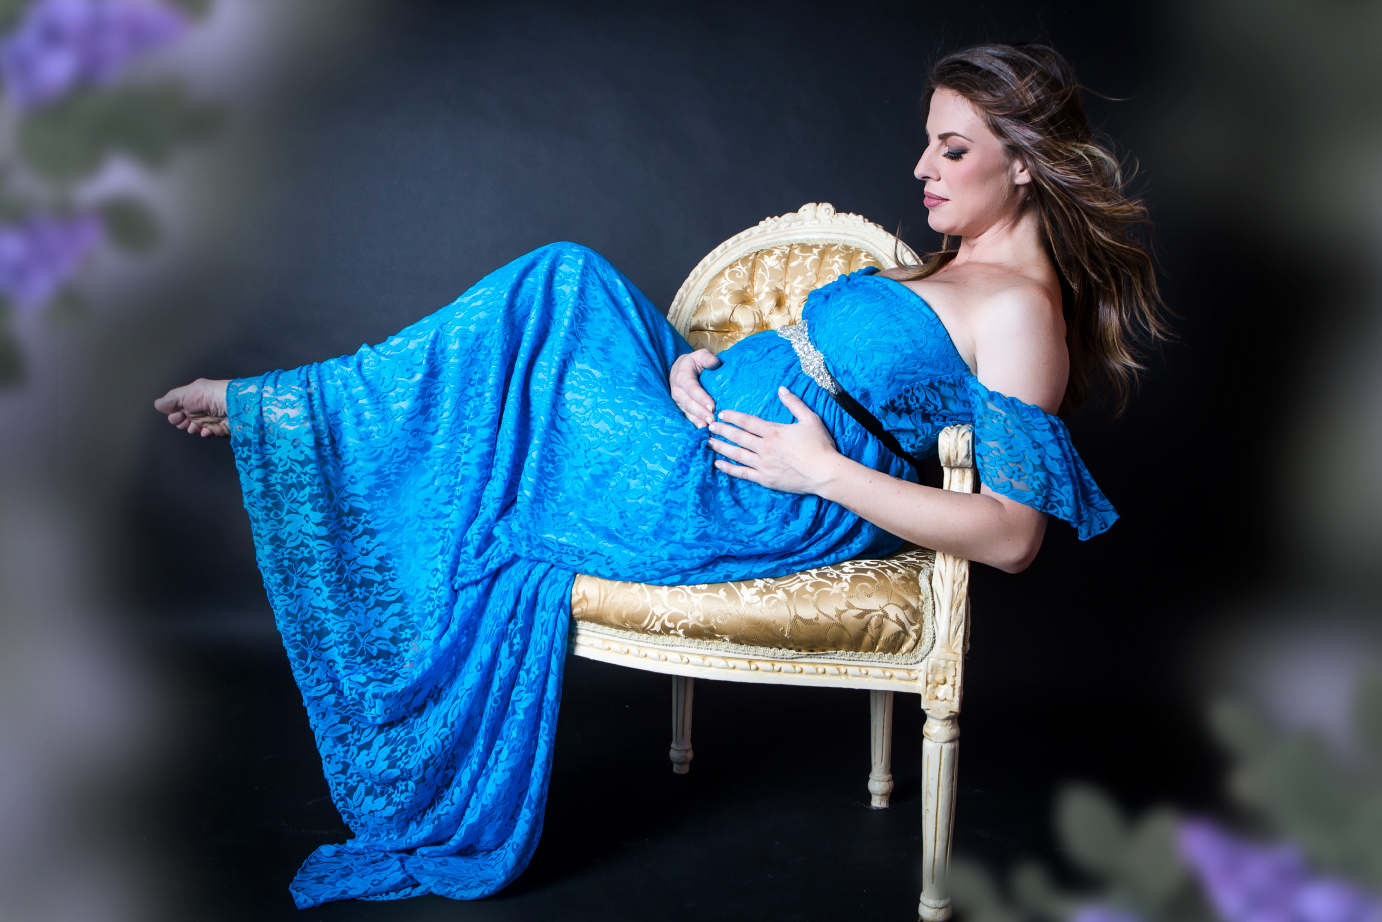 baby bump photo shoot scatti d'autore